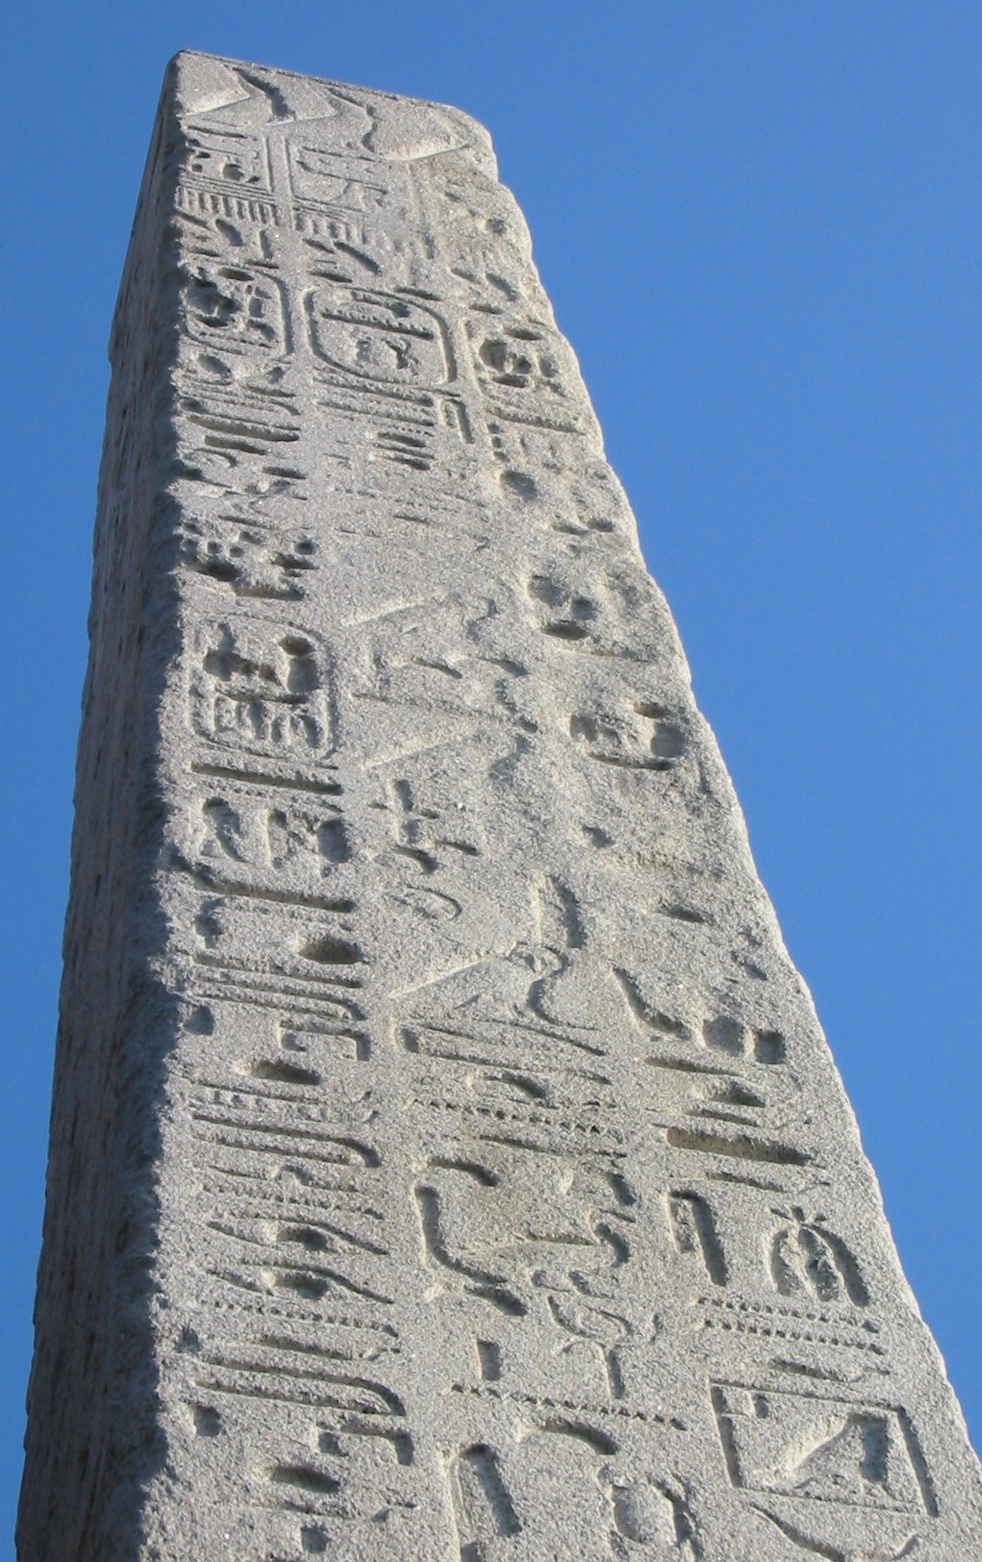 Cleopatra's_Needle_(London)_inscriptions.jpg